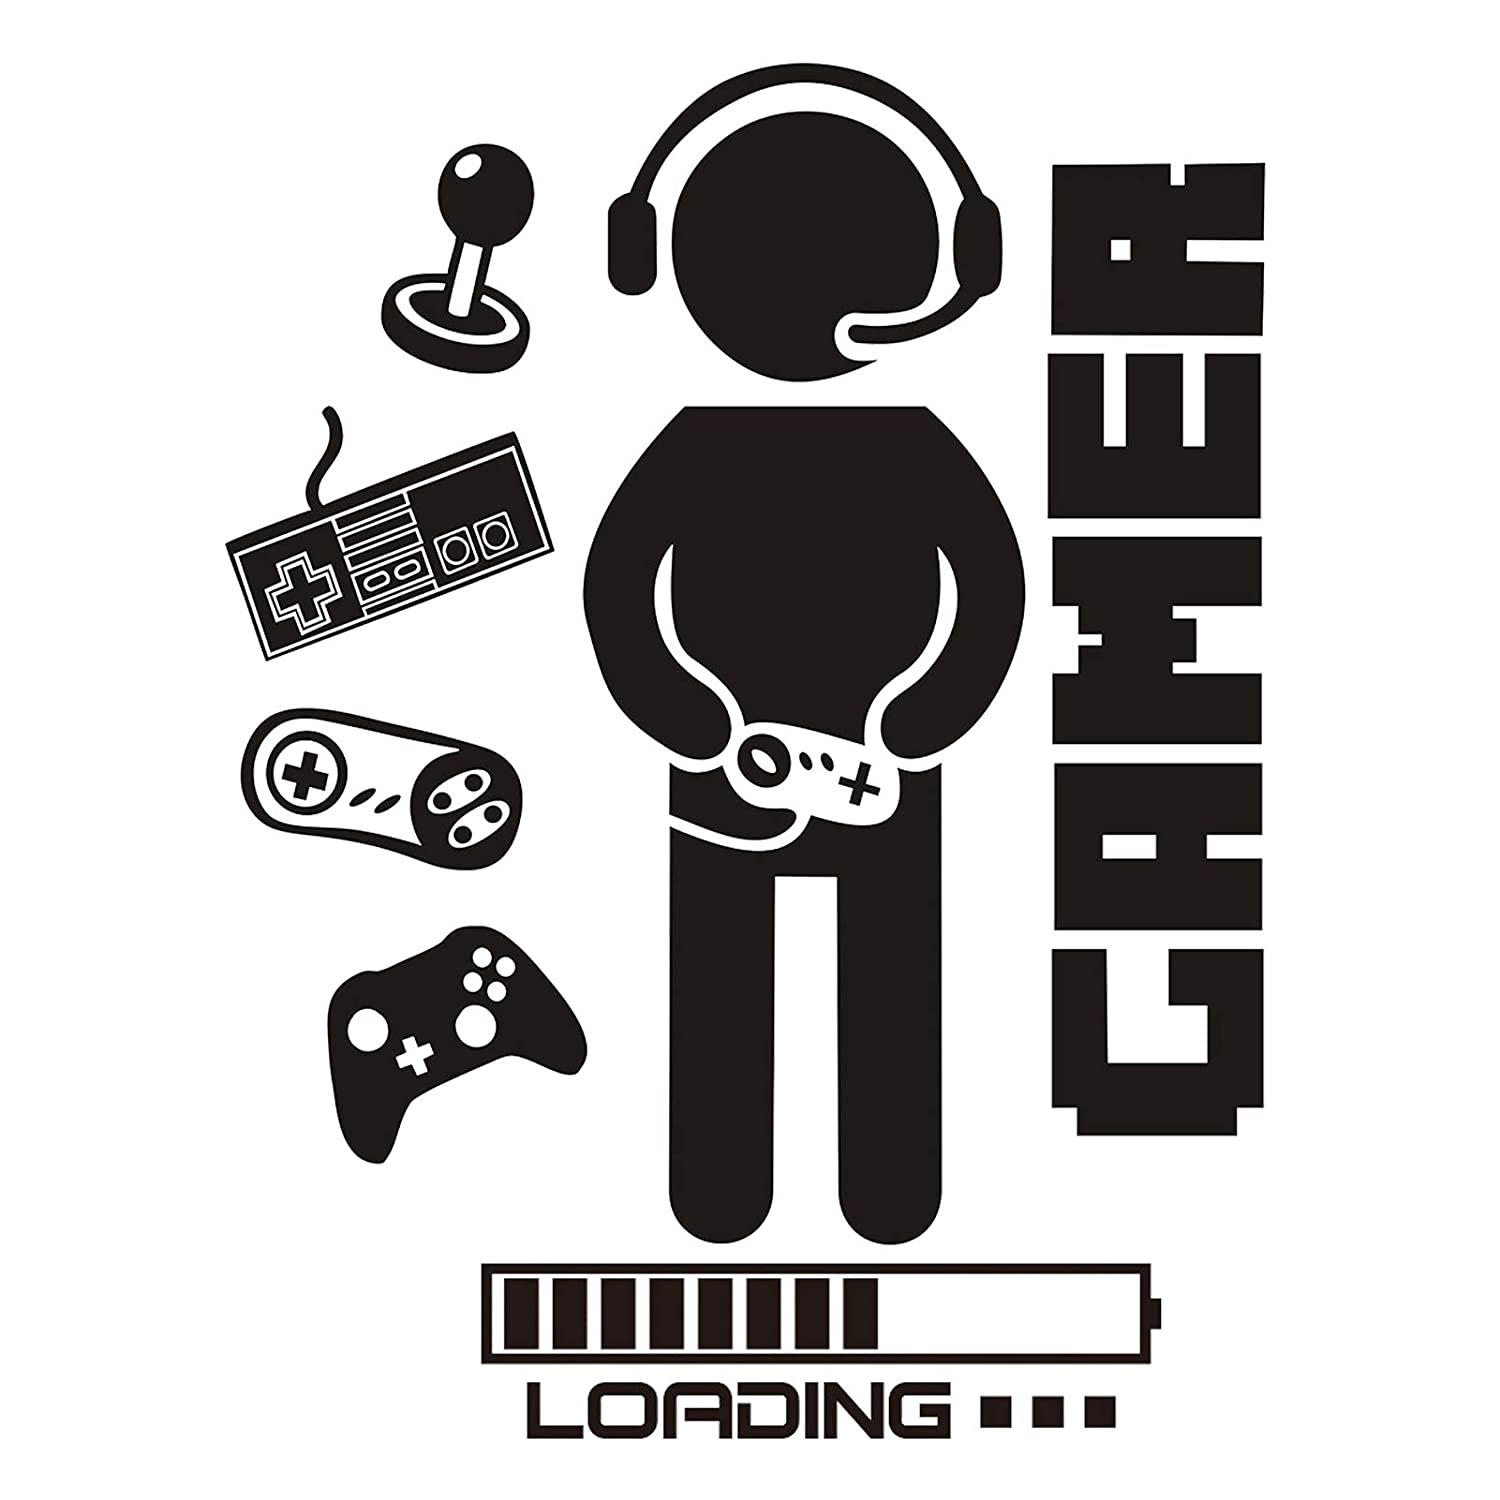 Gamer Room Wall Decals Stickers Boys Bedroom Decor Video Gaming Loading Controller Vinyl Playroom Teen Boy Large Wall Decoration Gifts